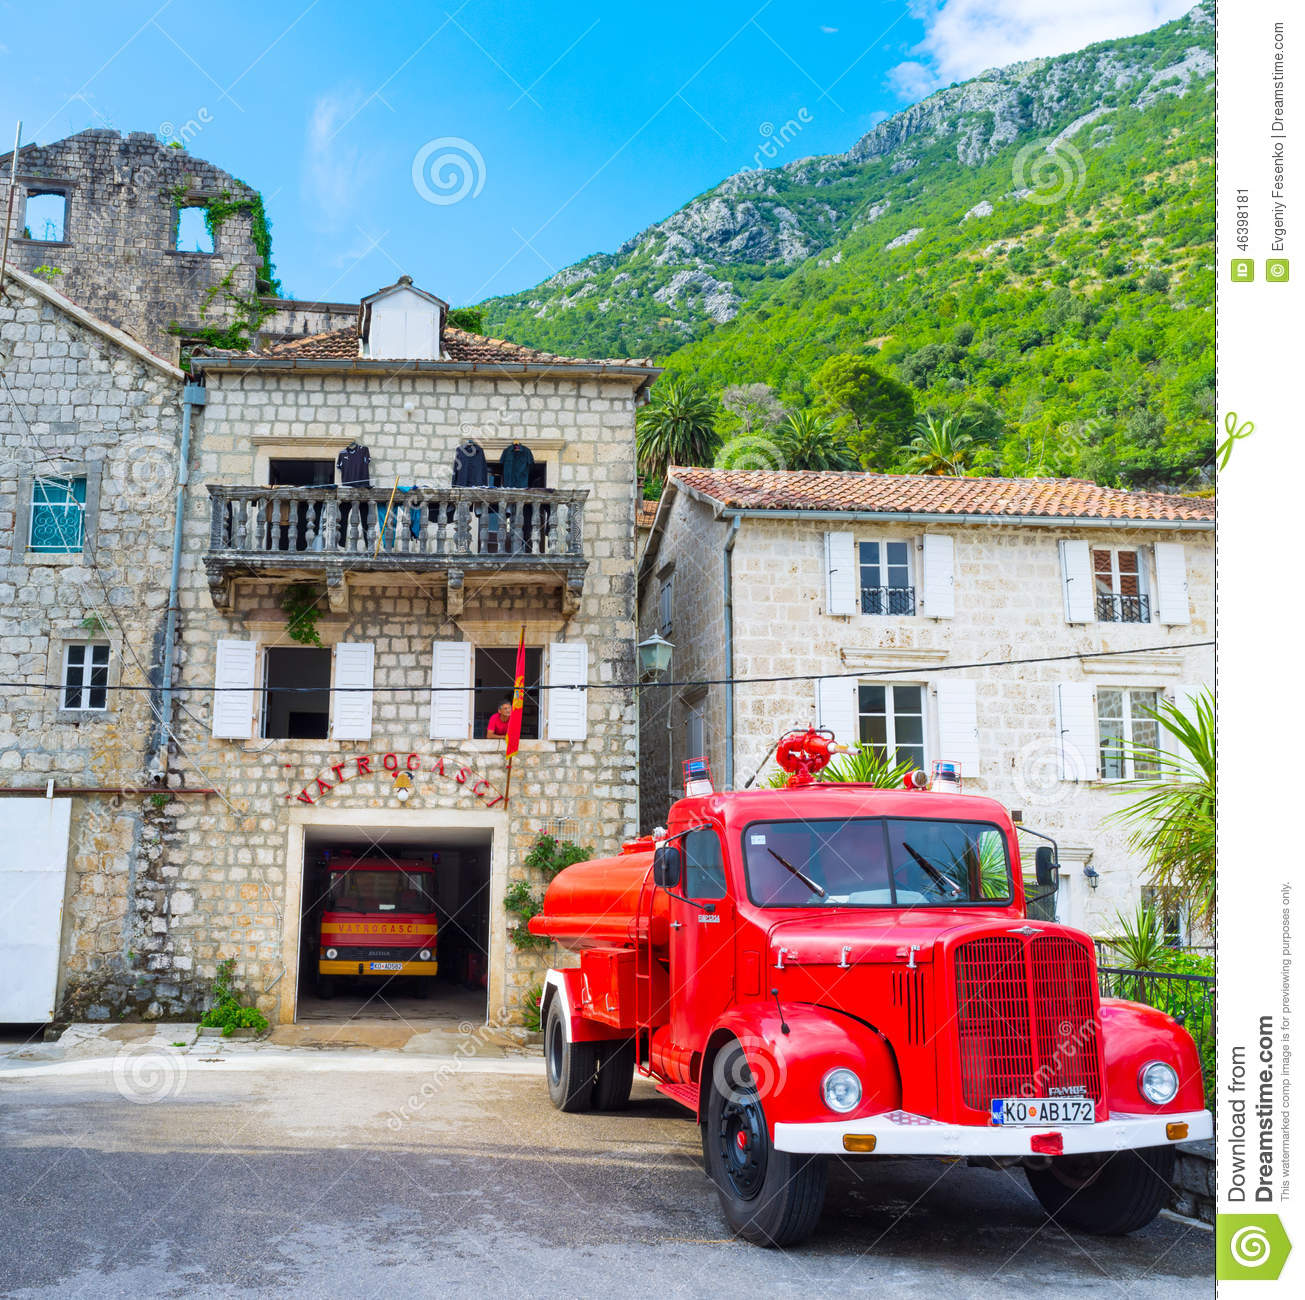 Vintage Retro Fire Station Building Editorial Image